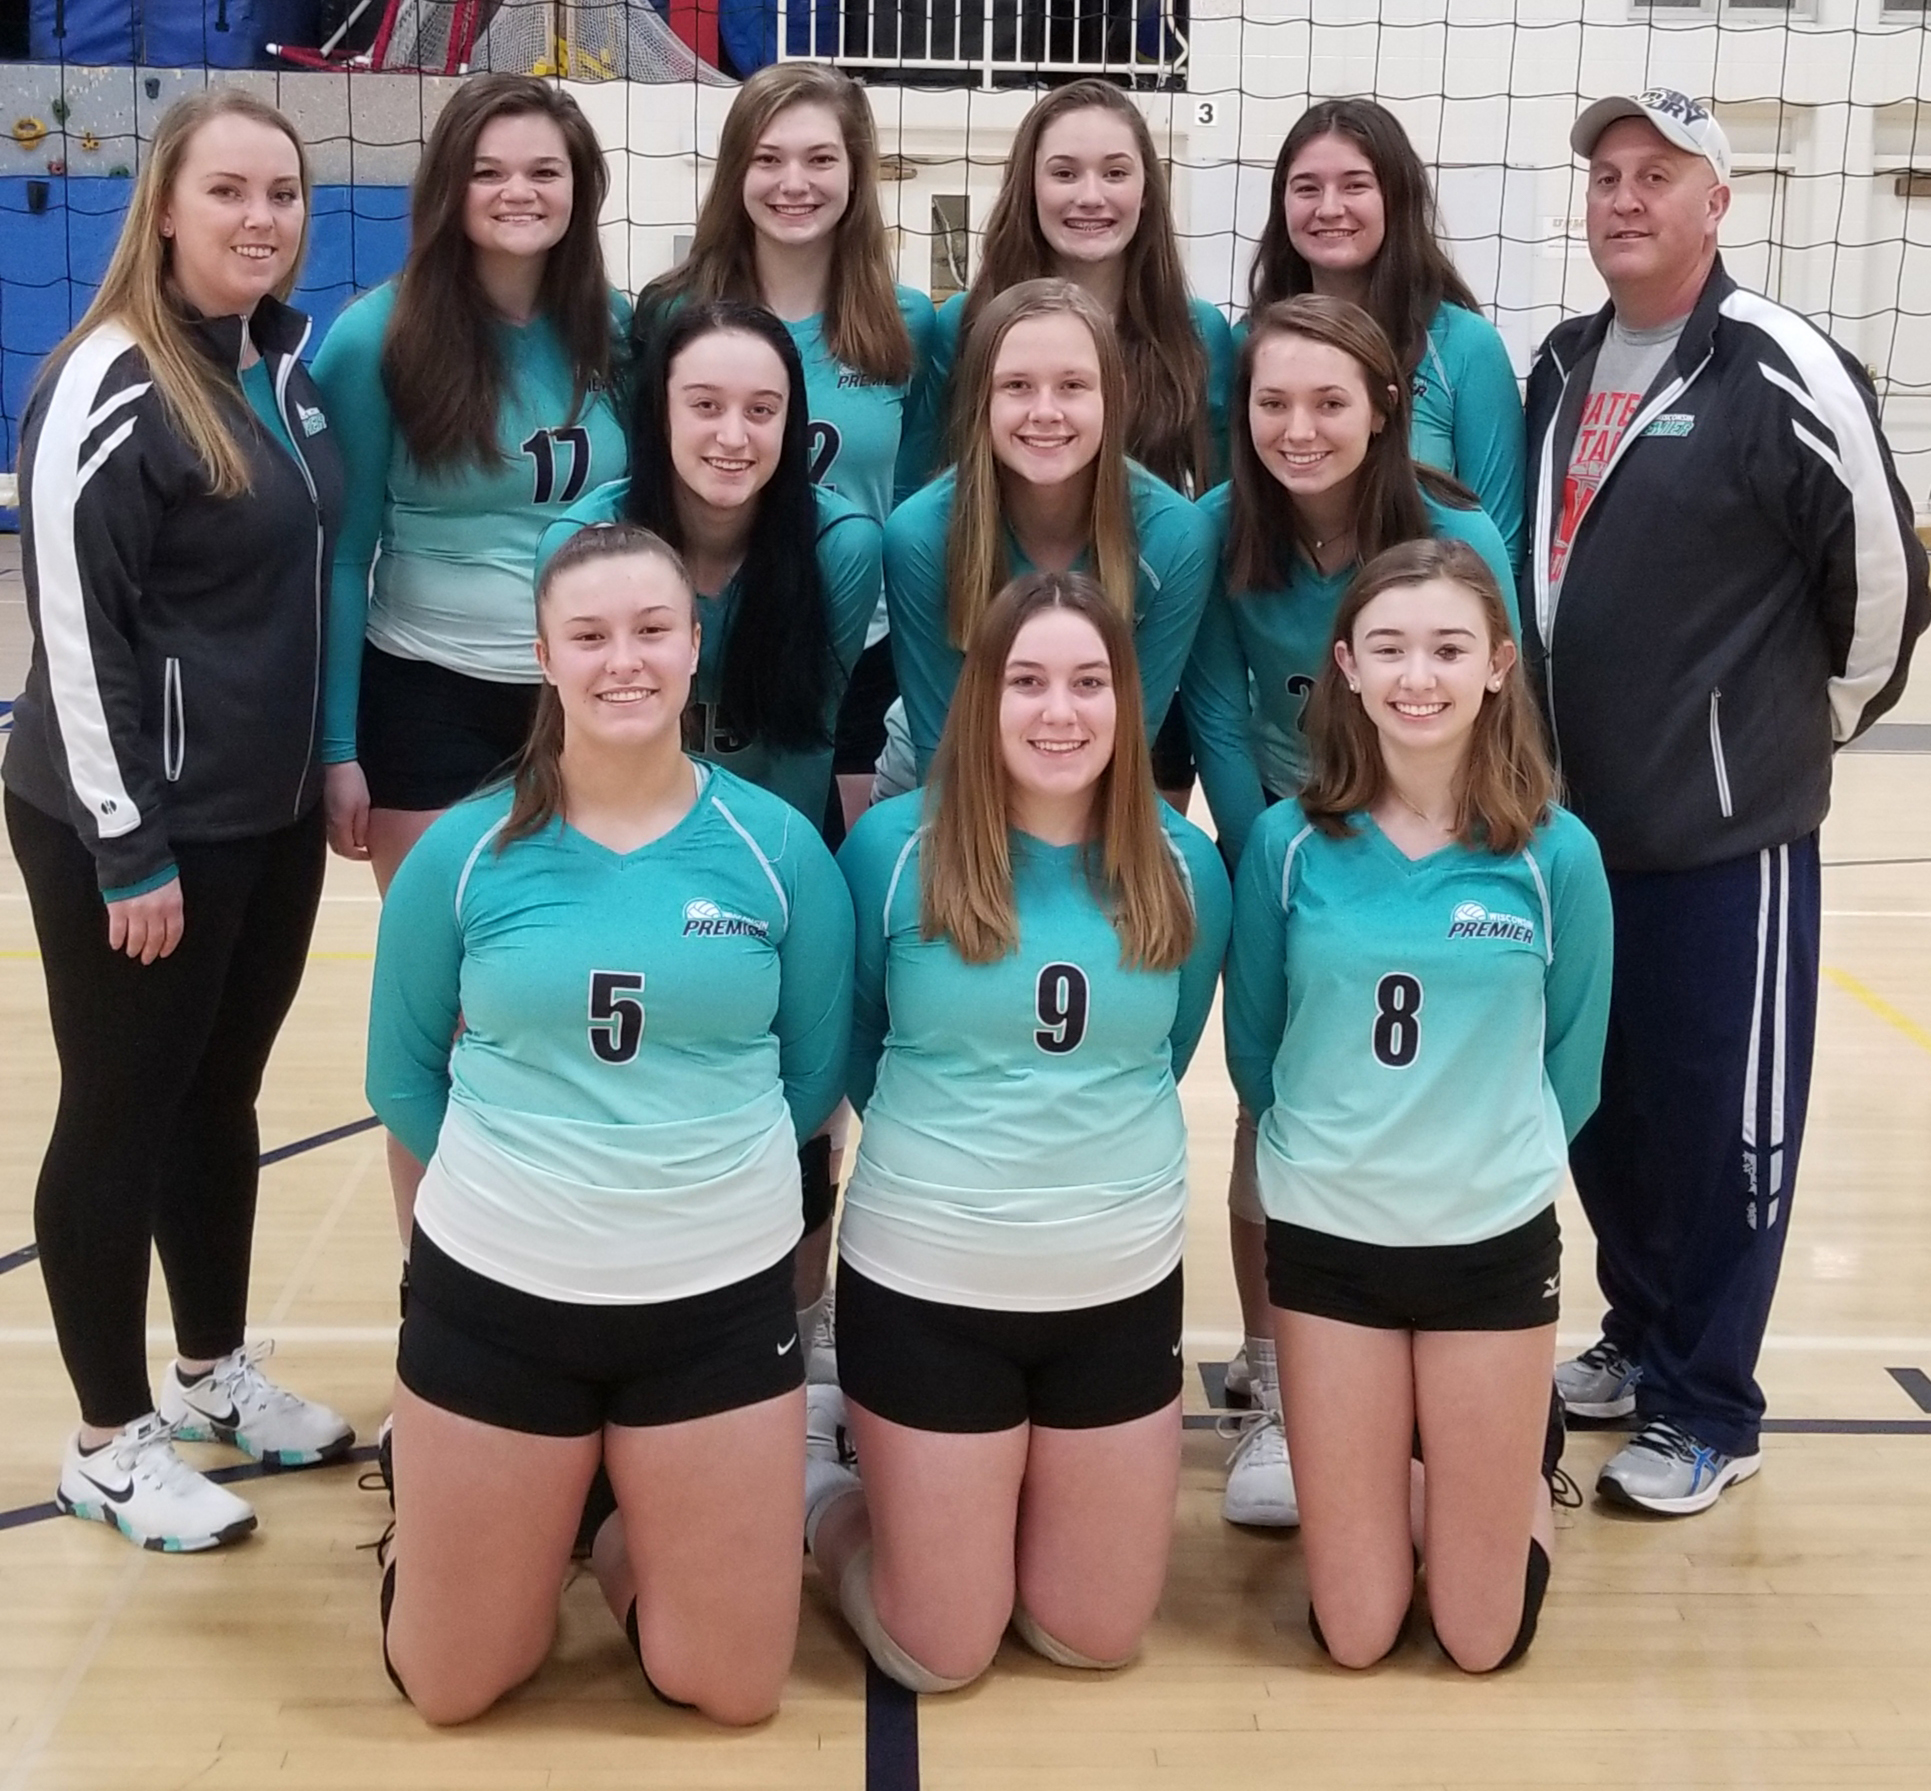 17 teal team photo